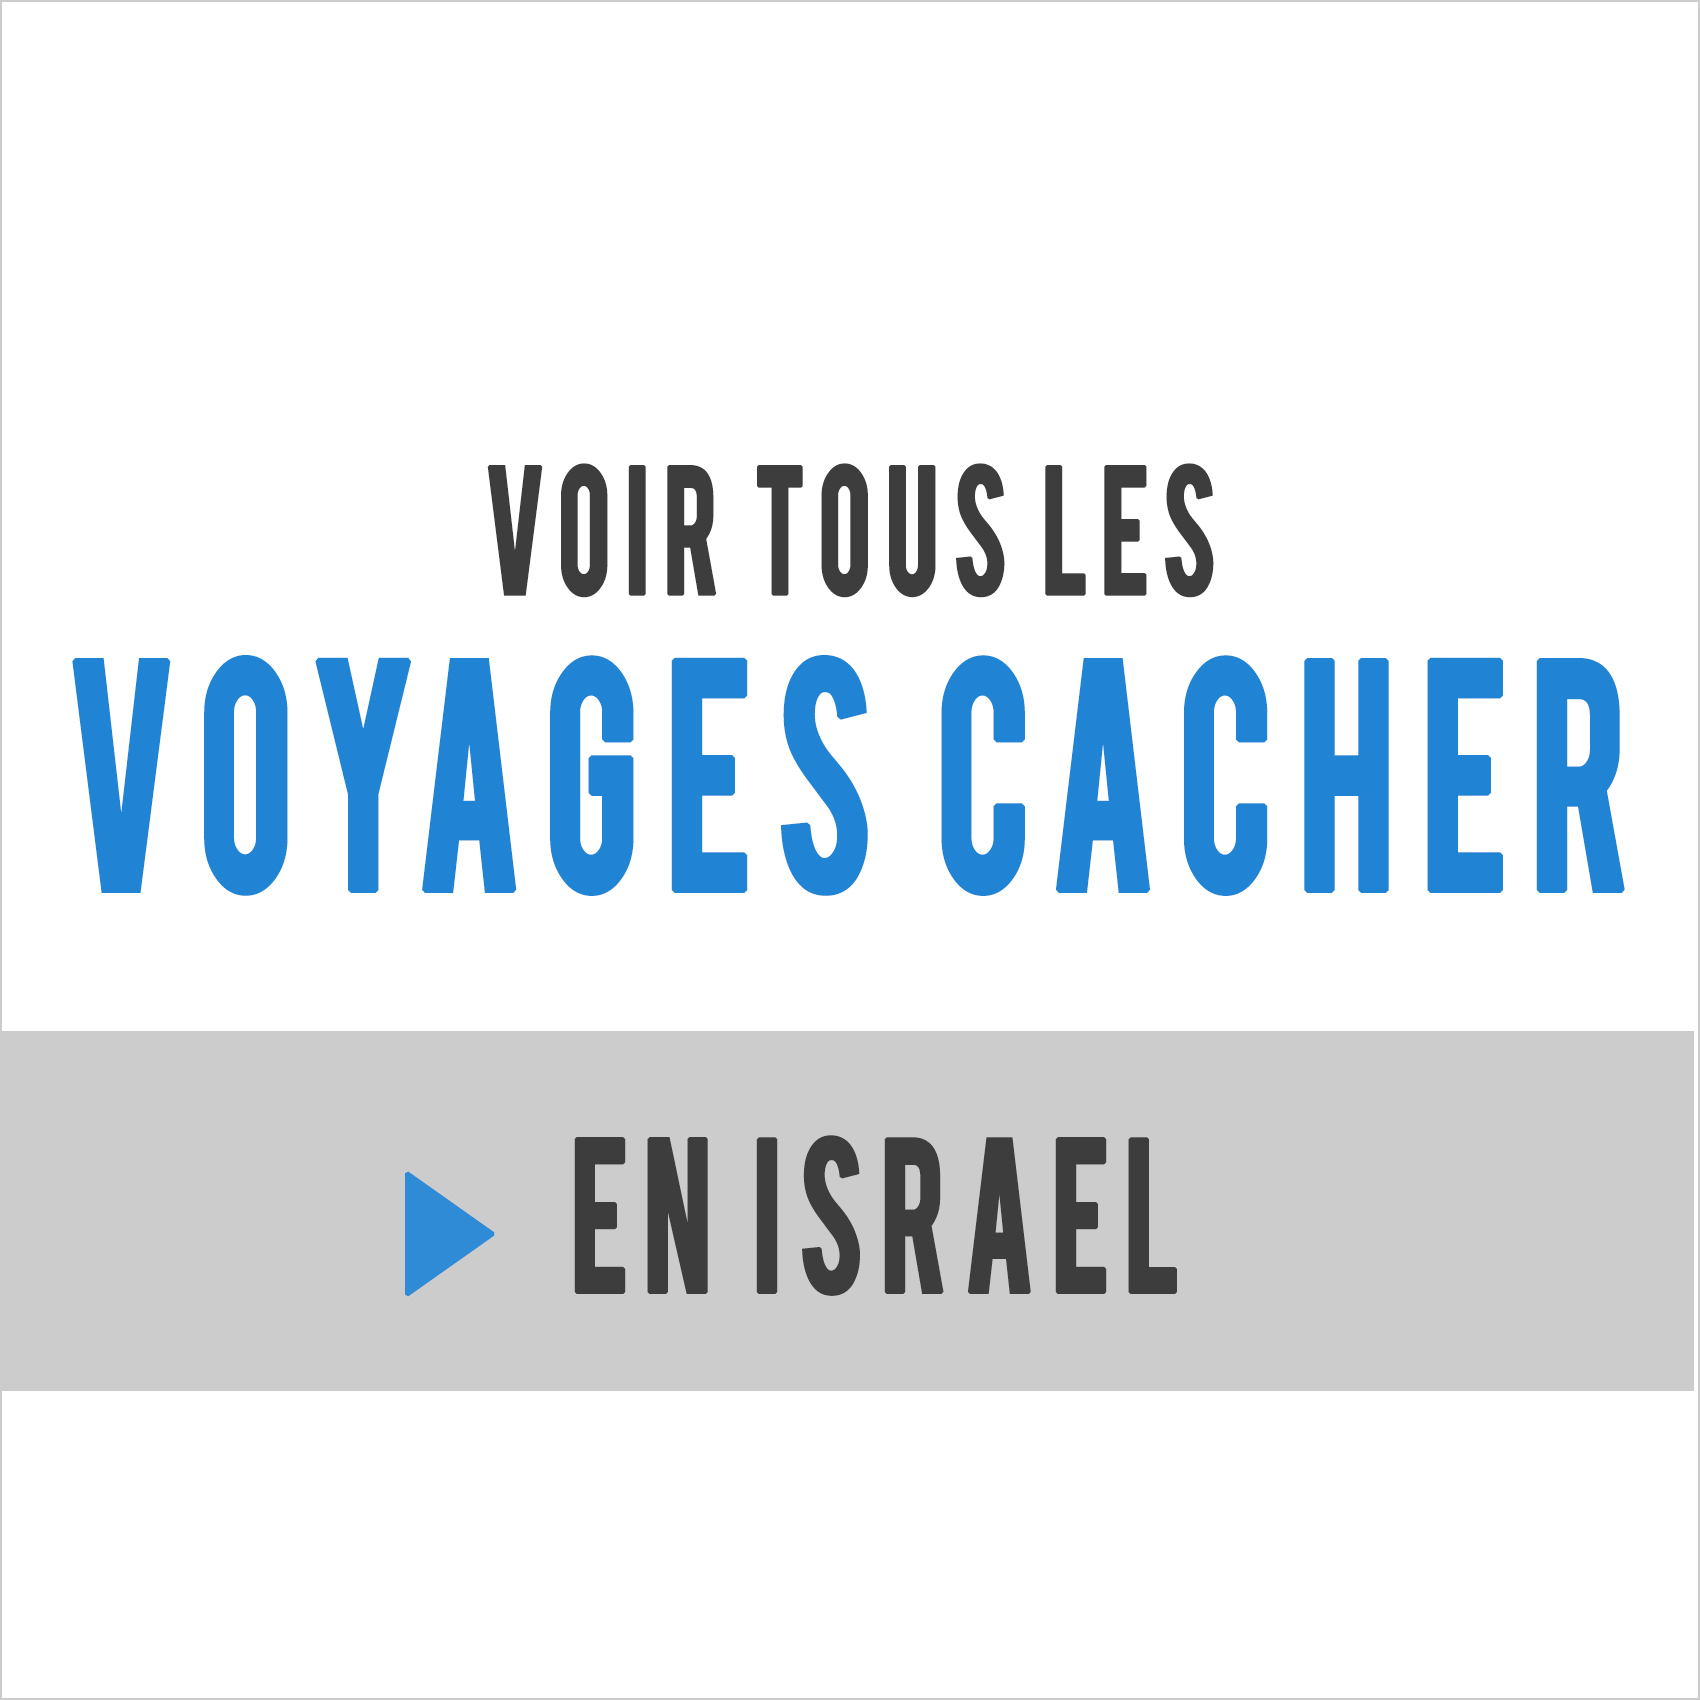 voyages cacher israel